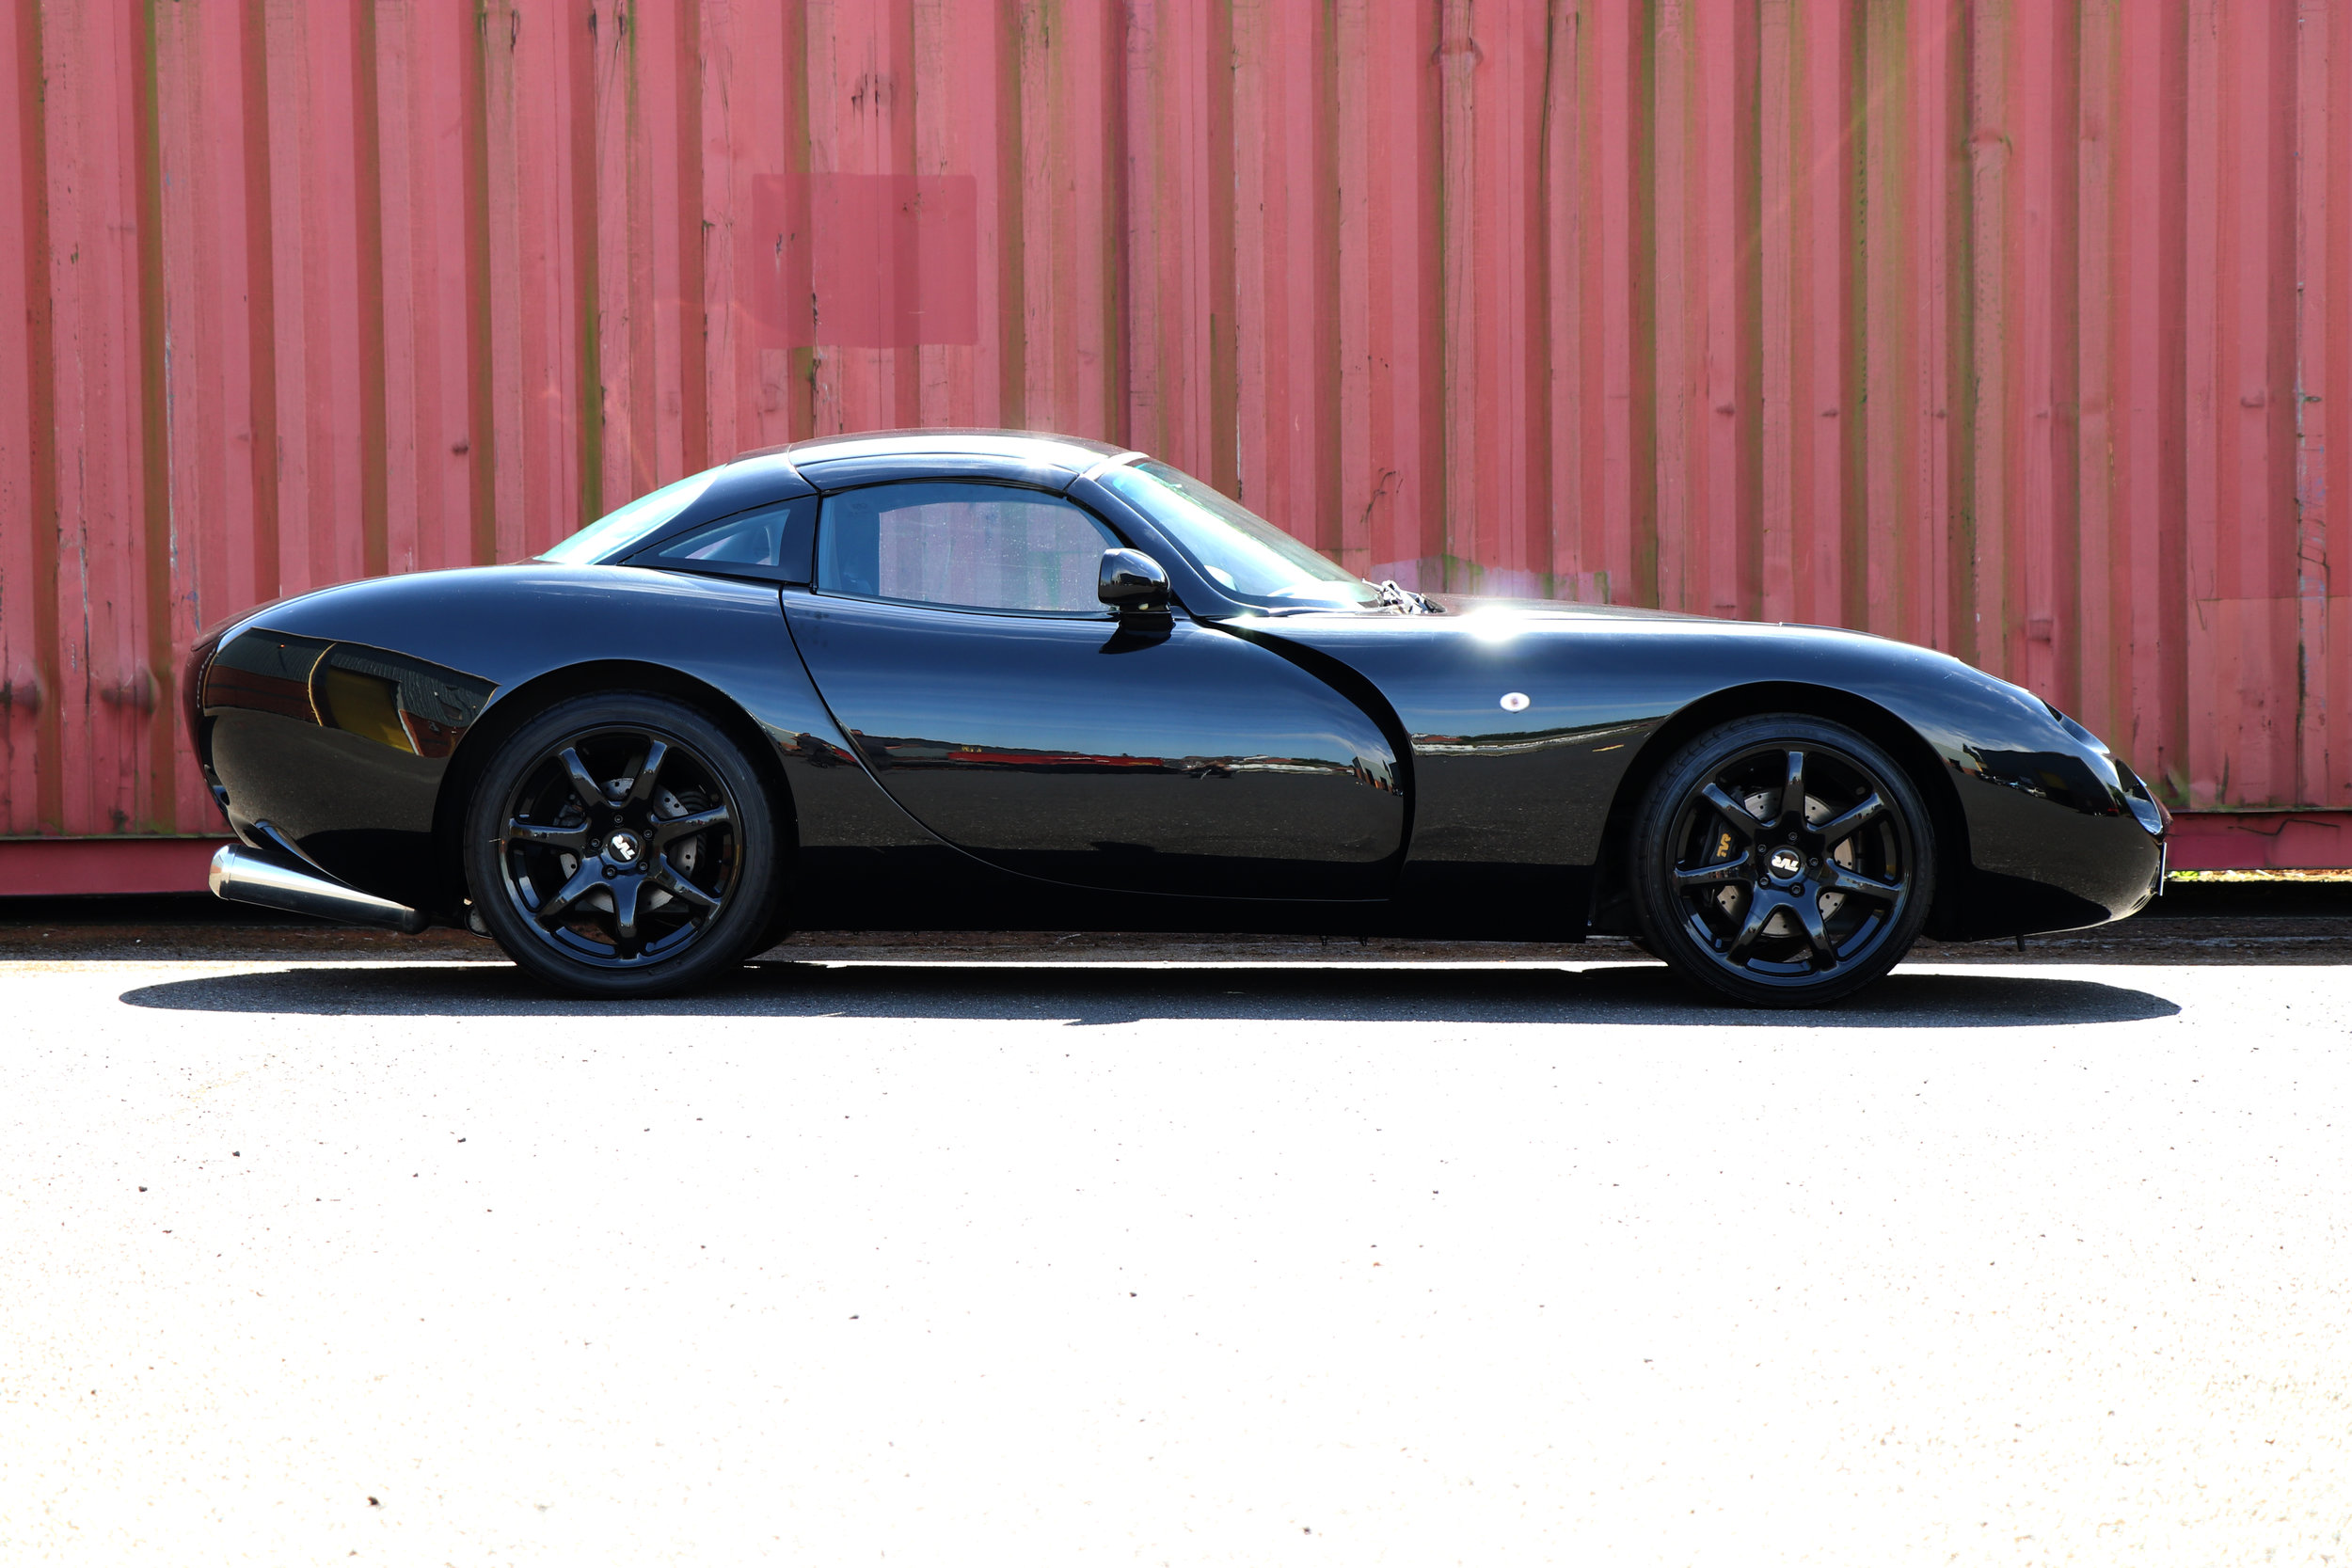 Fully restored 2000 TVR Tuscan for sale at Three Point four